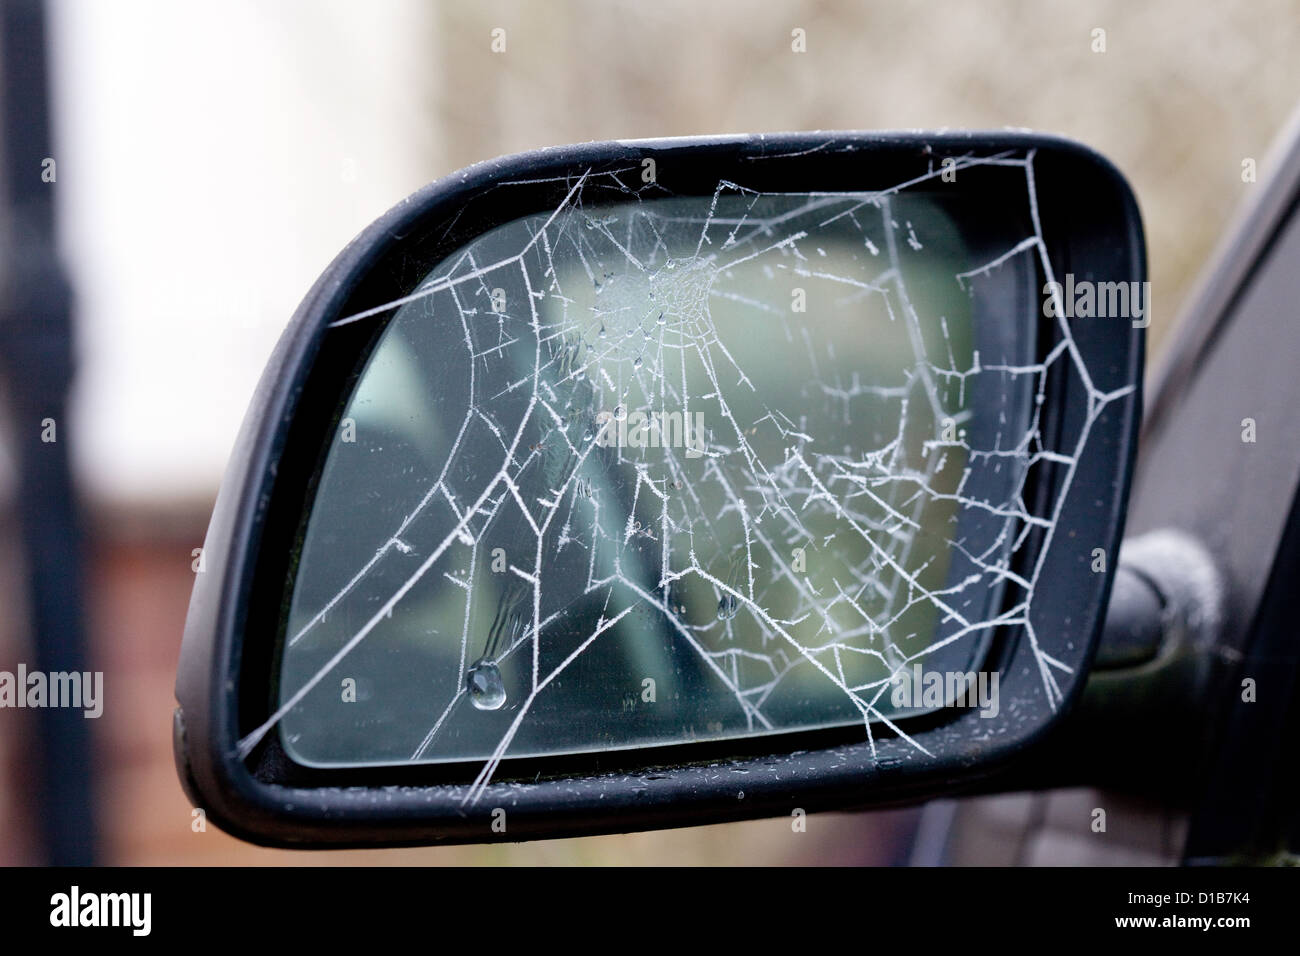 Frost on a cobweb on a car wing mirror symbolising cold weather driving, UK - Stock Image